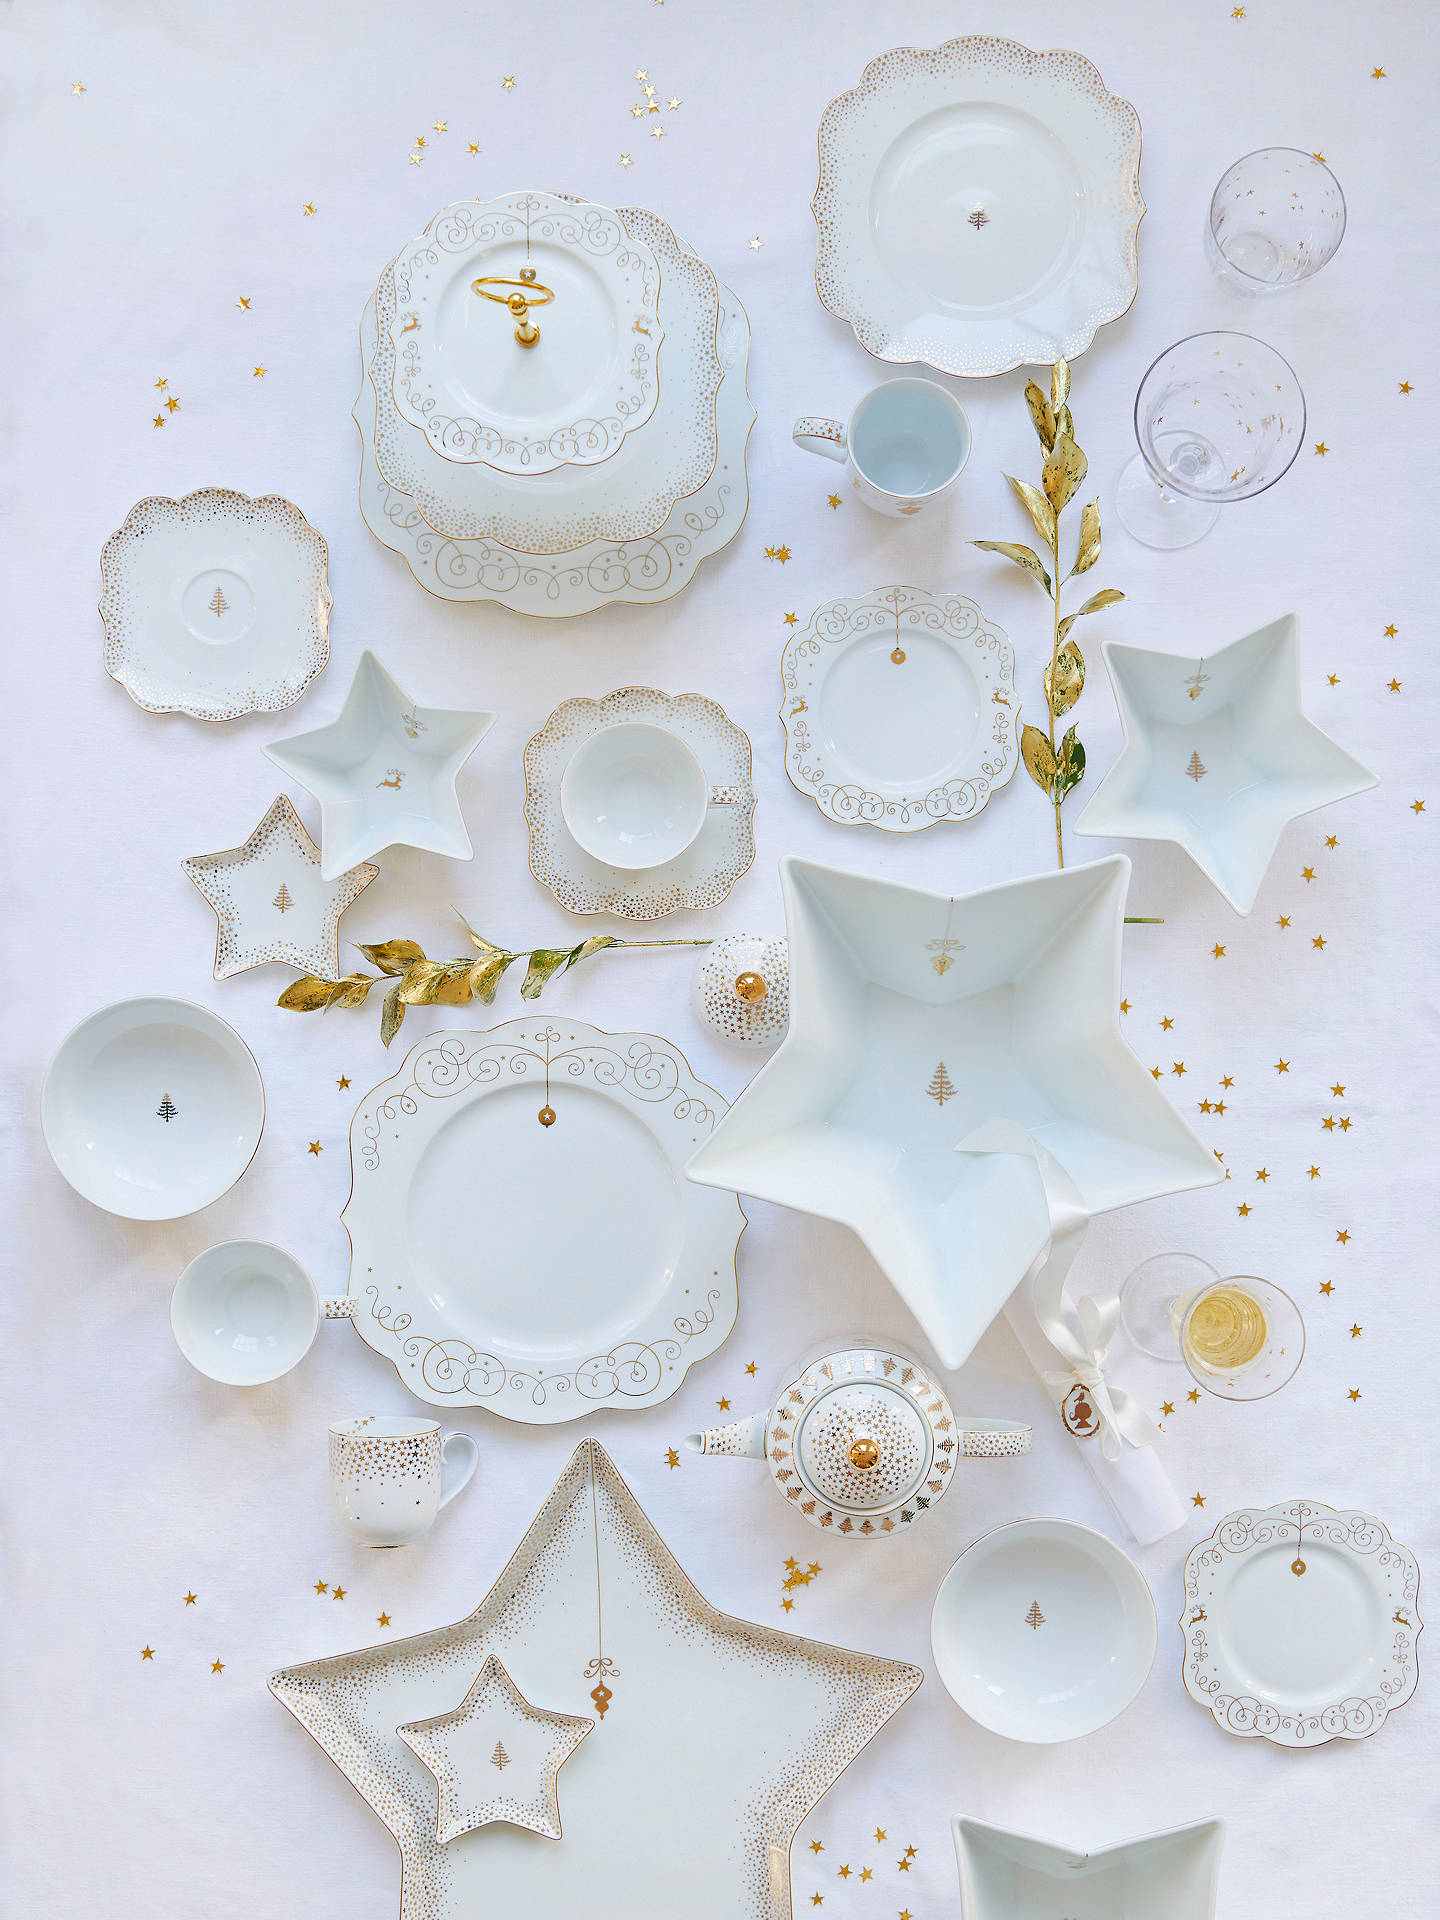 Buy PiP Studio Royal Christmas Petit Four Plate, White/Gold, 9.3cm Online at johnlewis.com